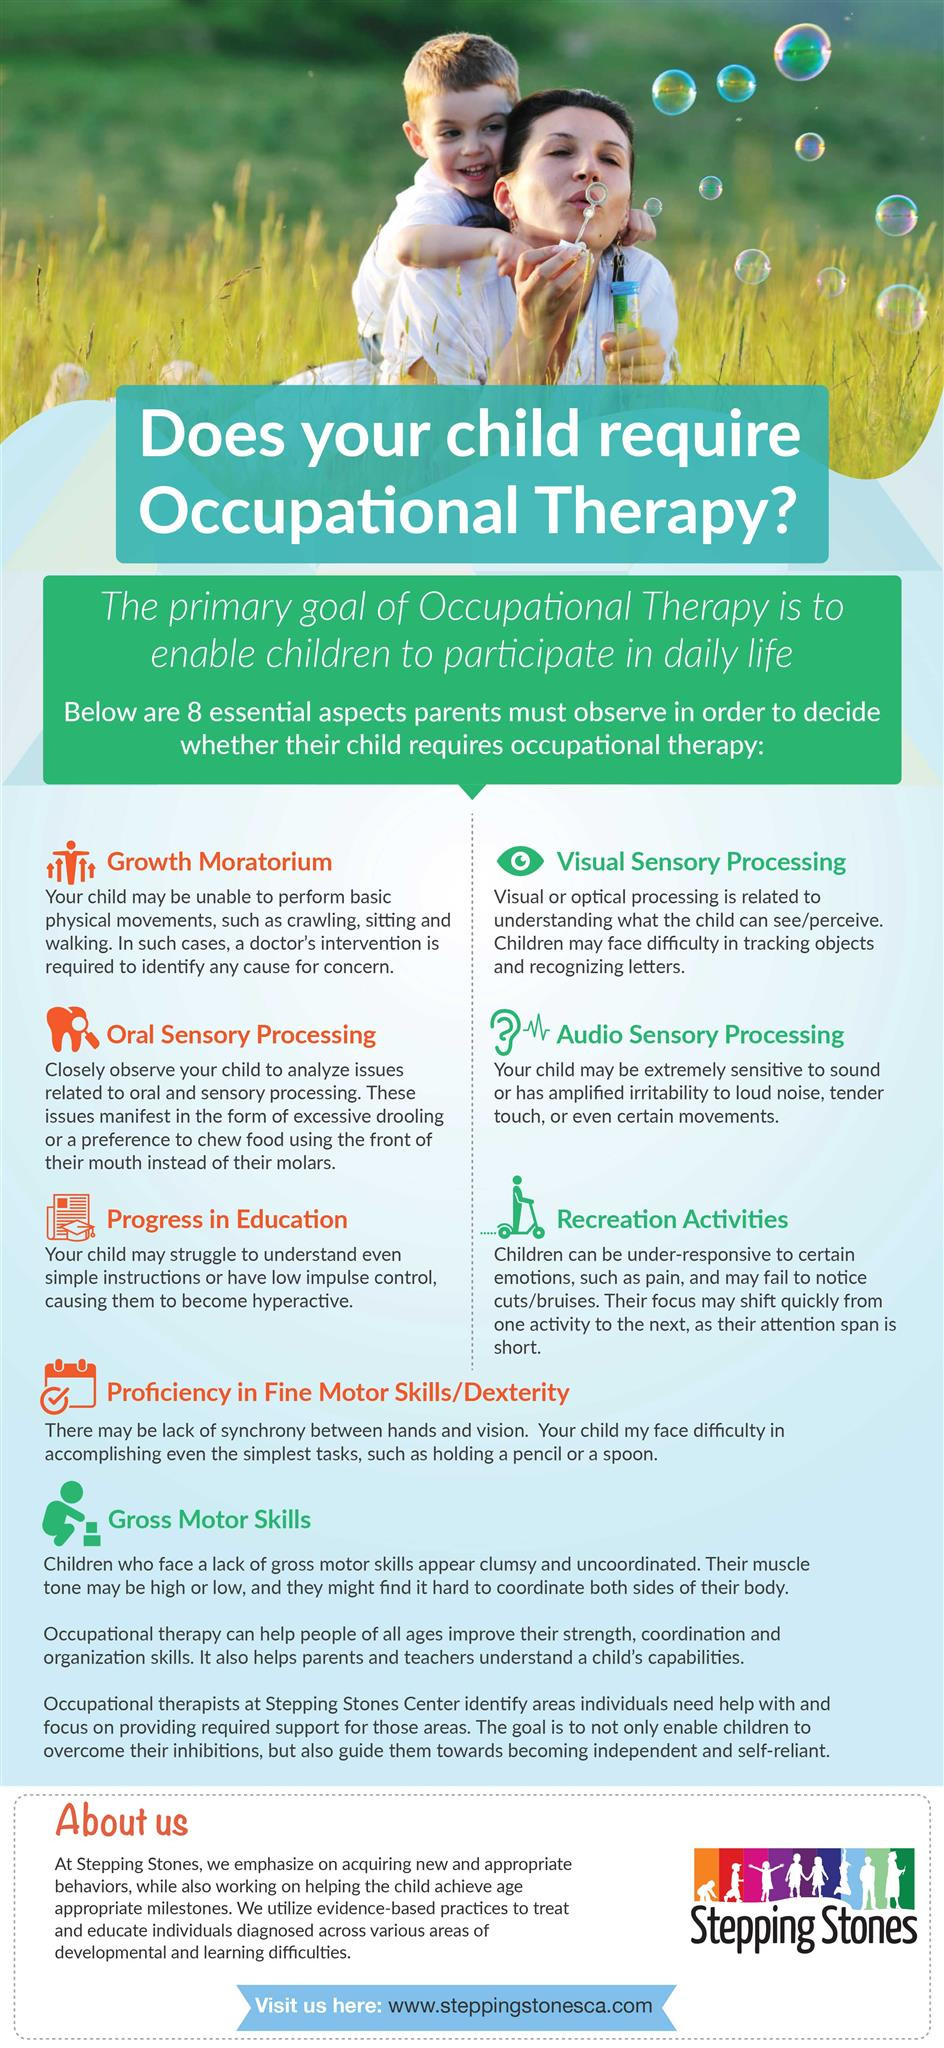 child require occupational therapy